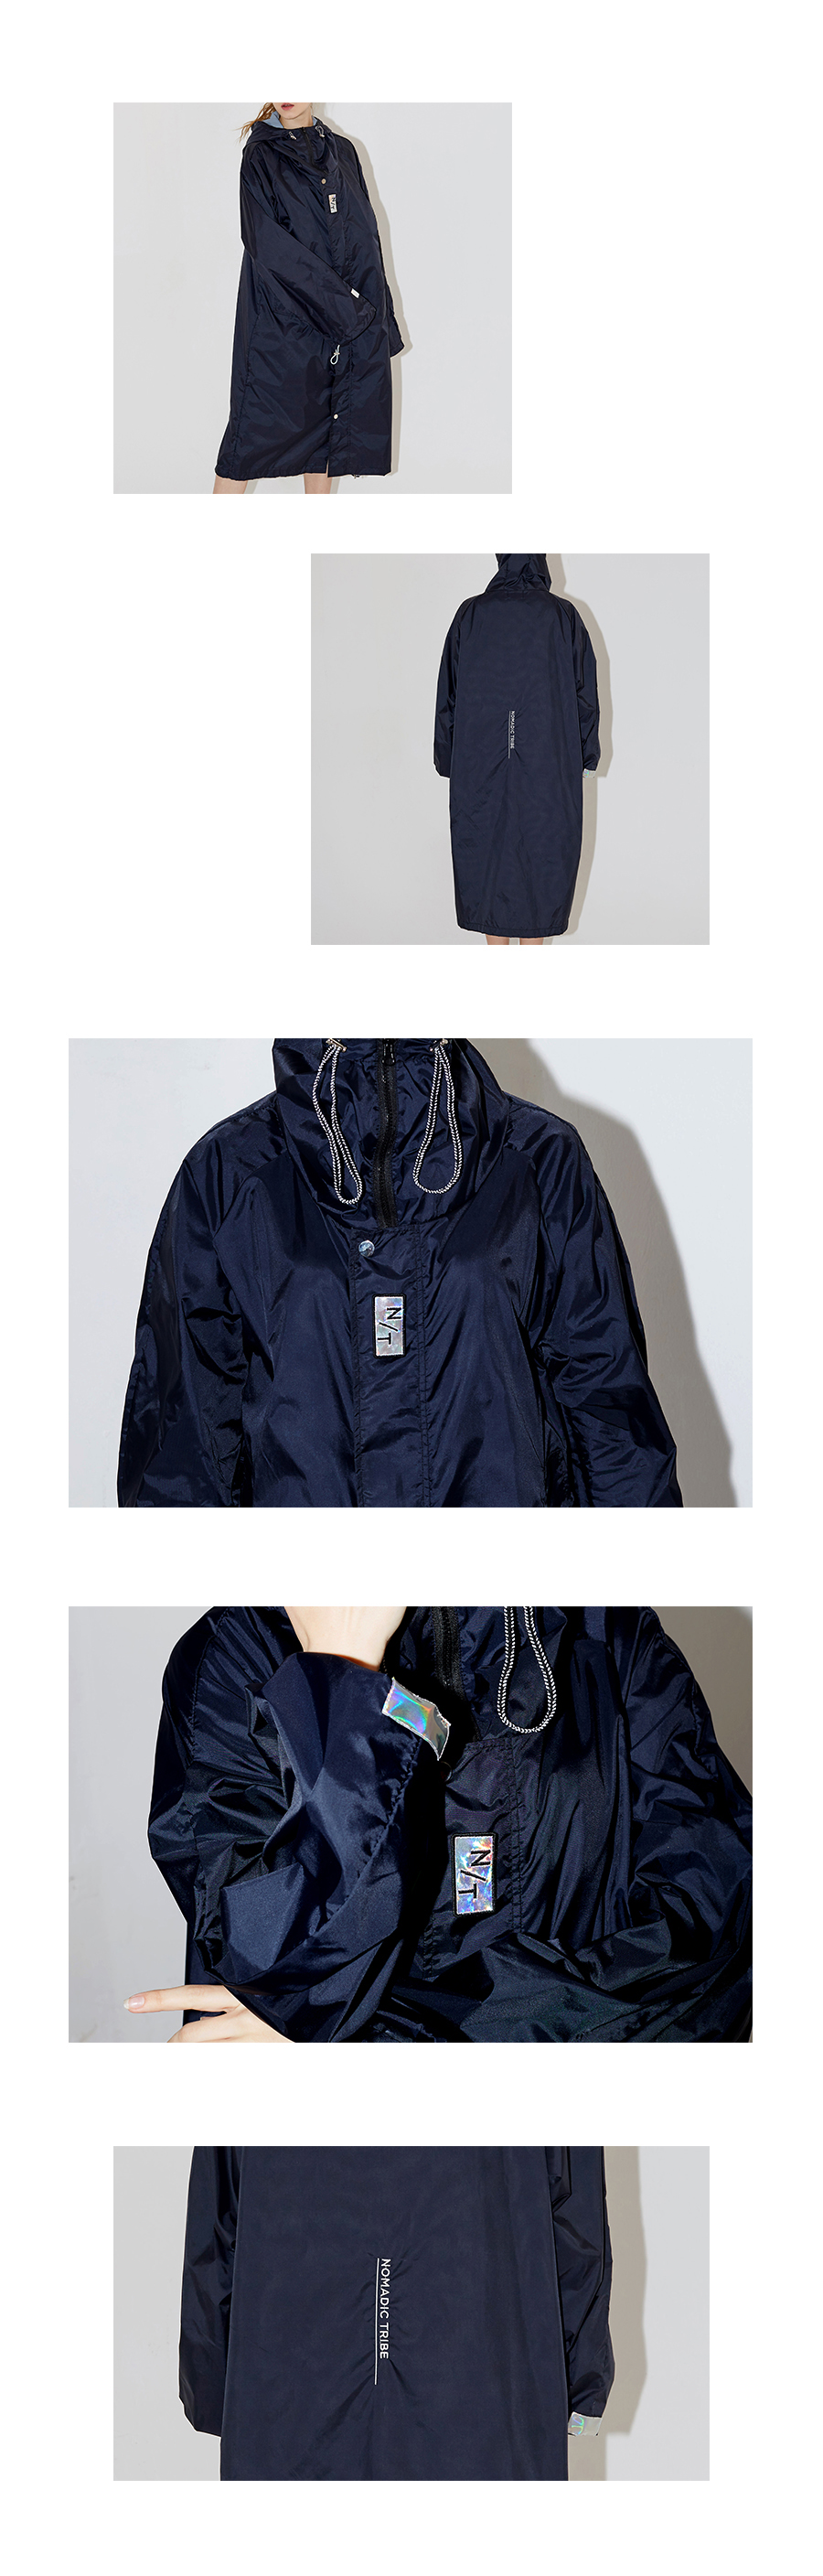 680-OVERSIZED-RAIN-COAT(bk)_03.jpg